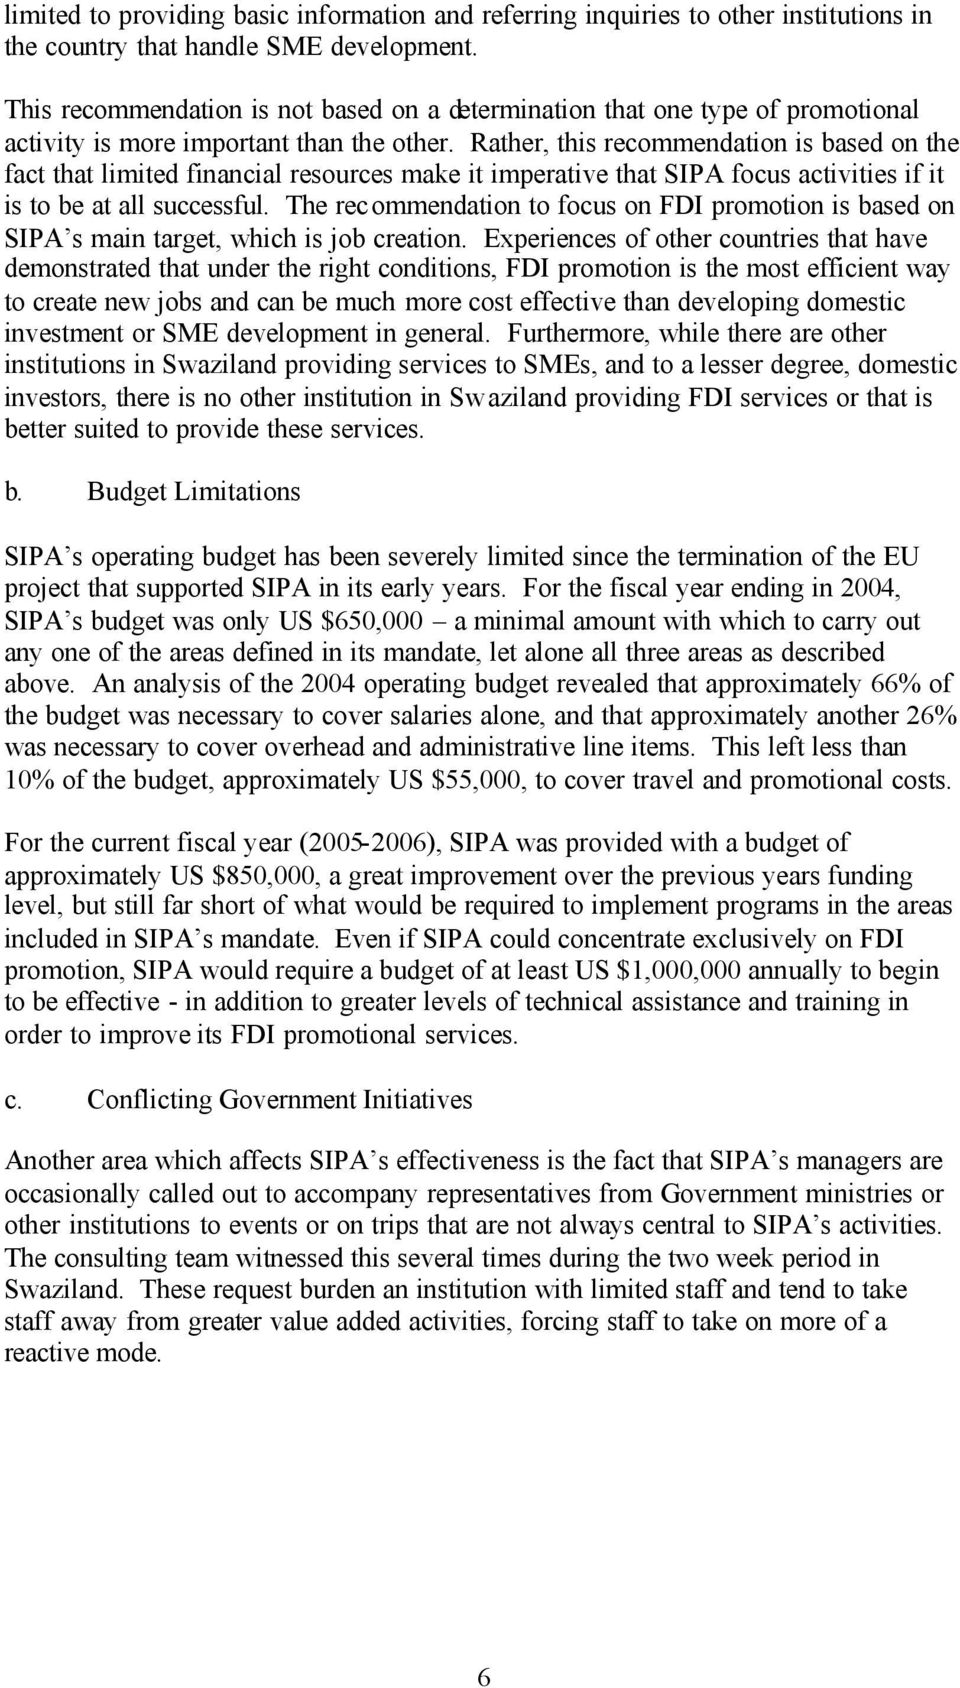 Rather, this recommendation is based on the fact that limited financial resources make it imperative that SIPA focus activities if it is to be at all successful.